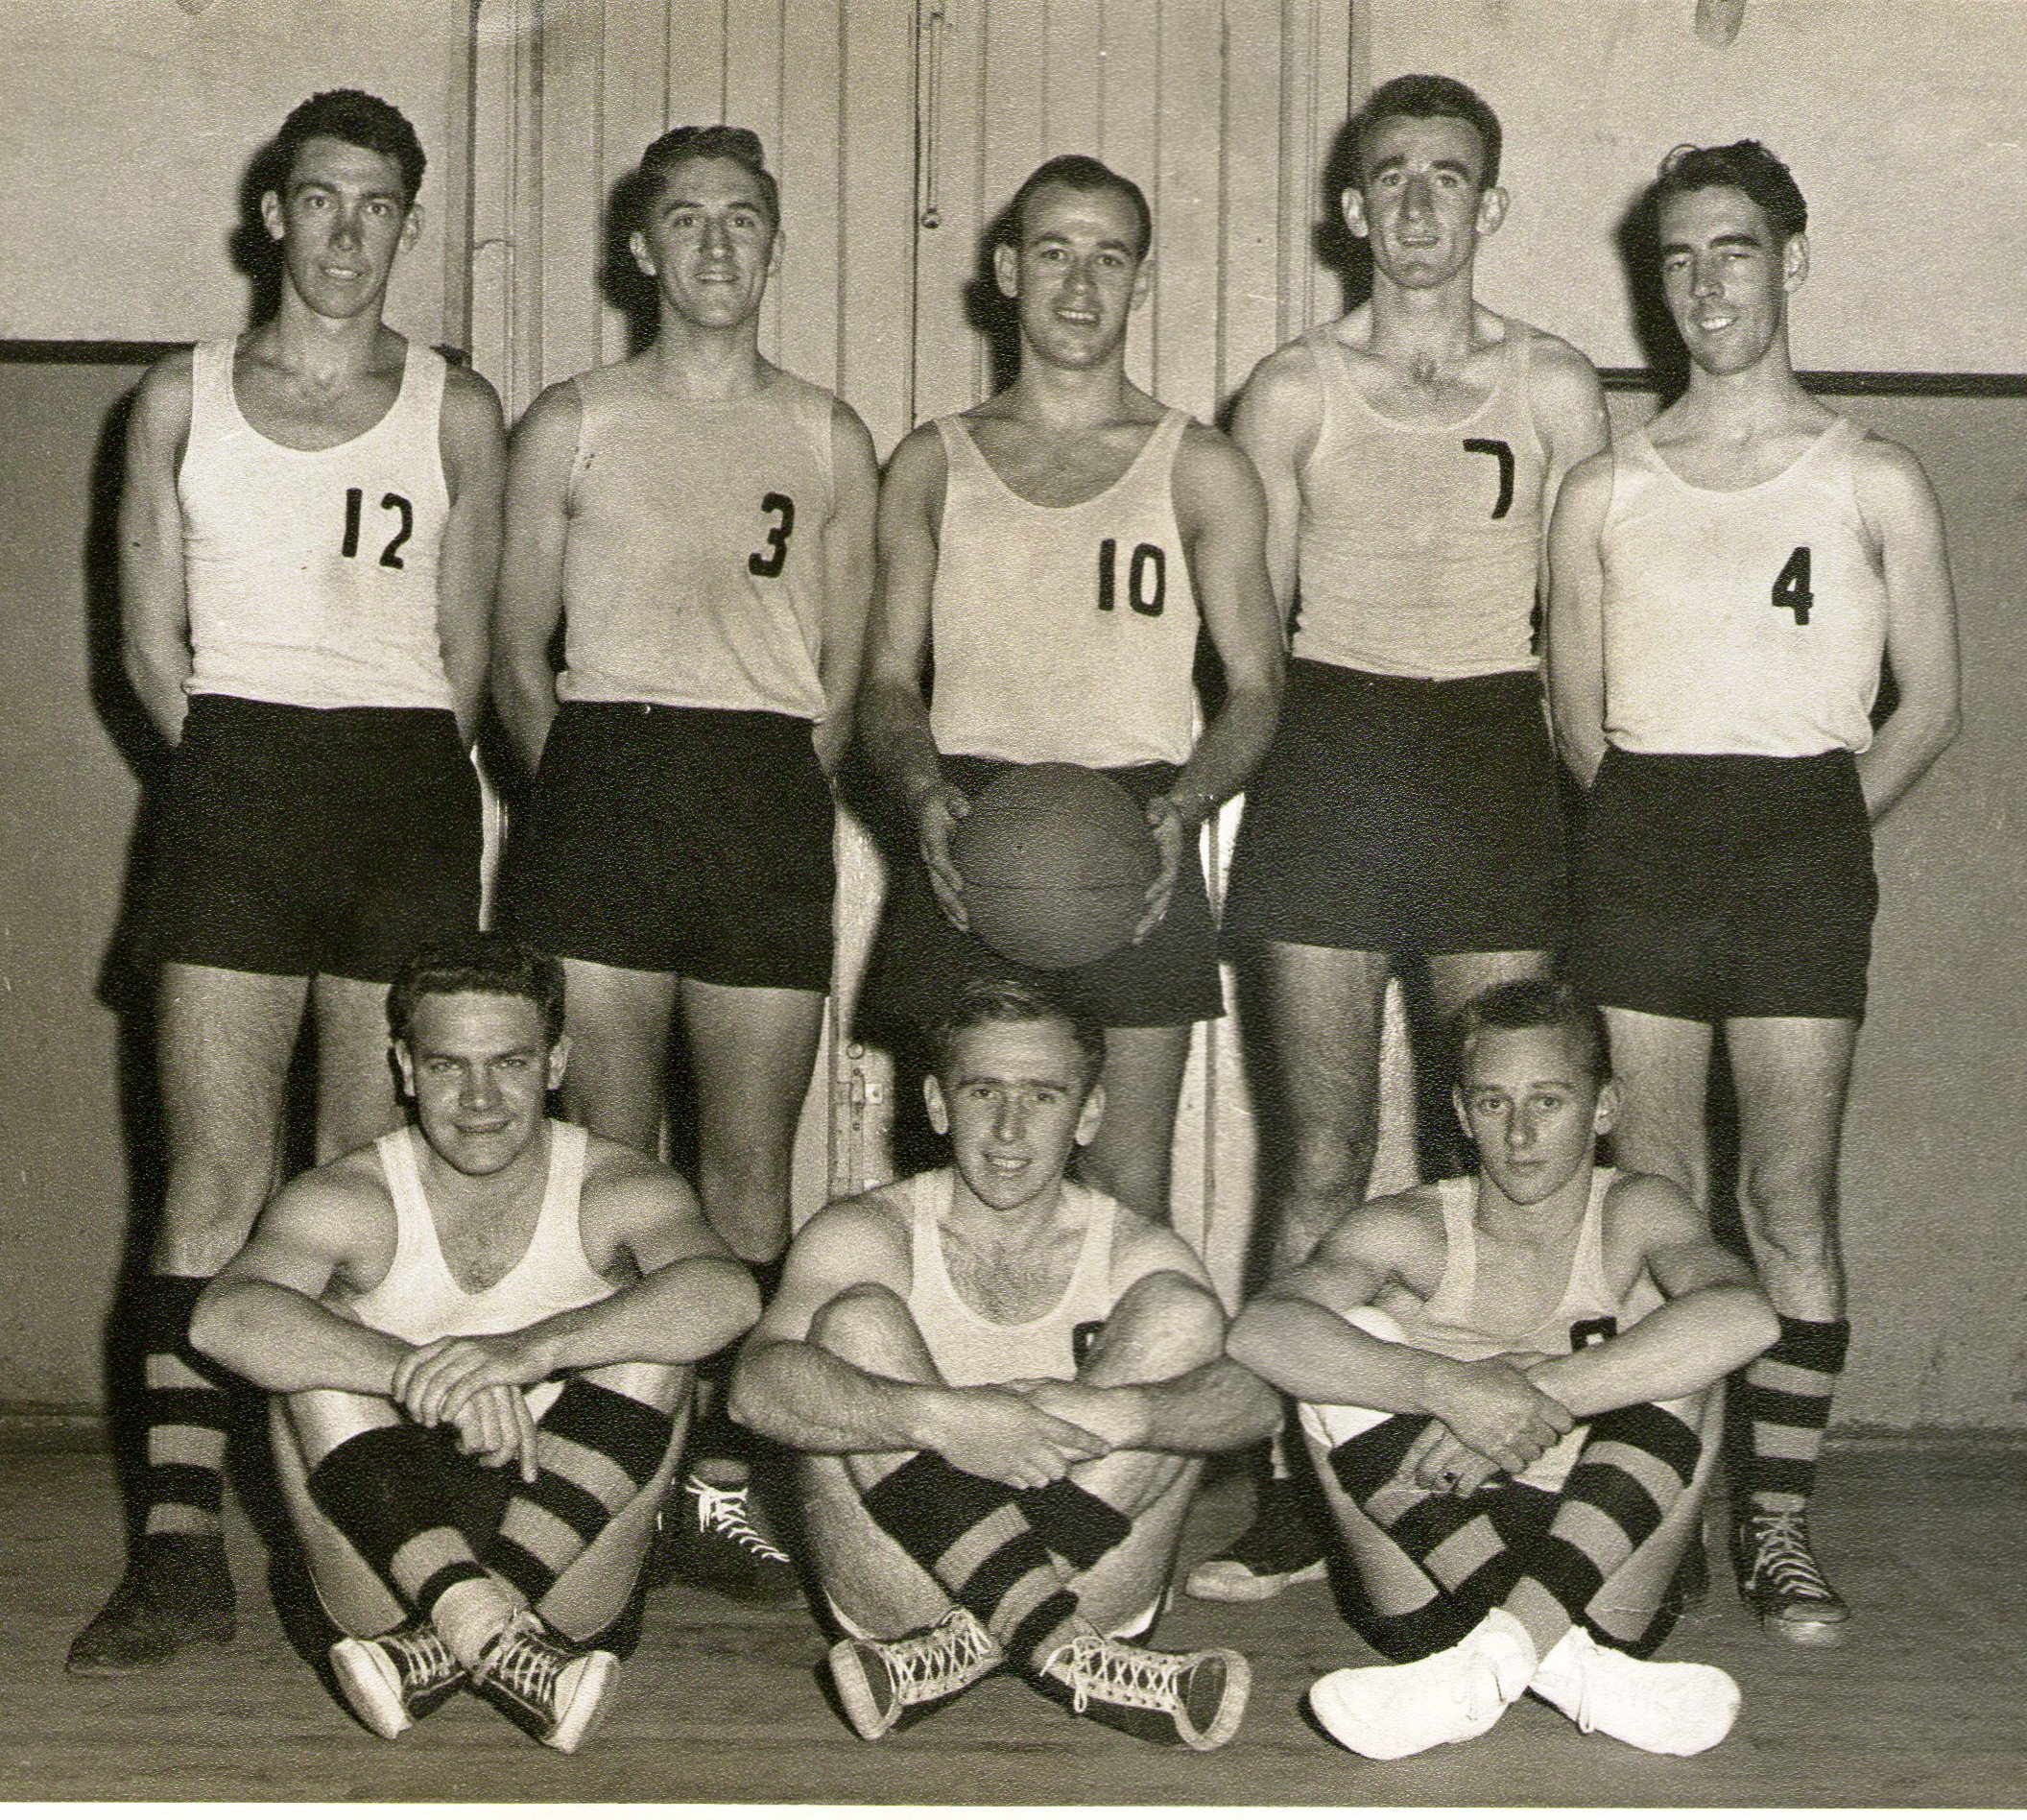 1959 Premiers Summer Team State Savings Bank Elizabeth Street Back (l-r) Graham Sherman, Reg Saunders, Geoff Cox, Des Collins, Gerry Gooley; Front Row (L-R) Alan Guy, Gordon Lester, Barry Hines